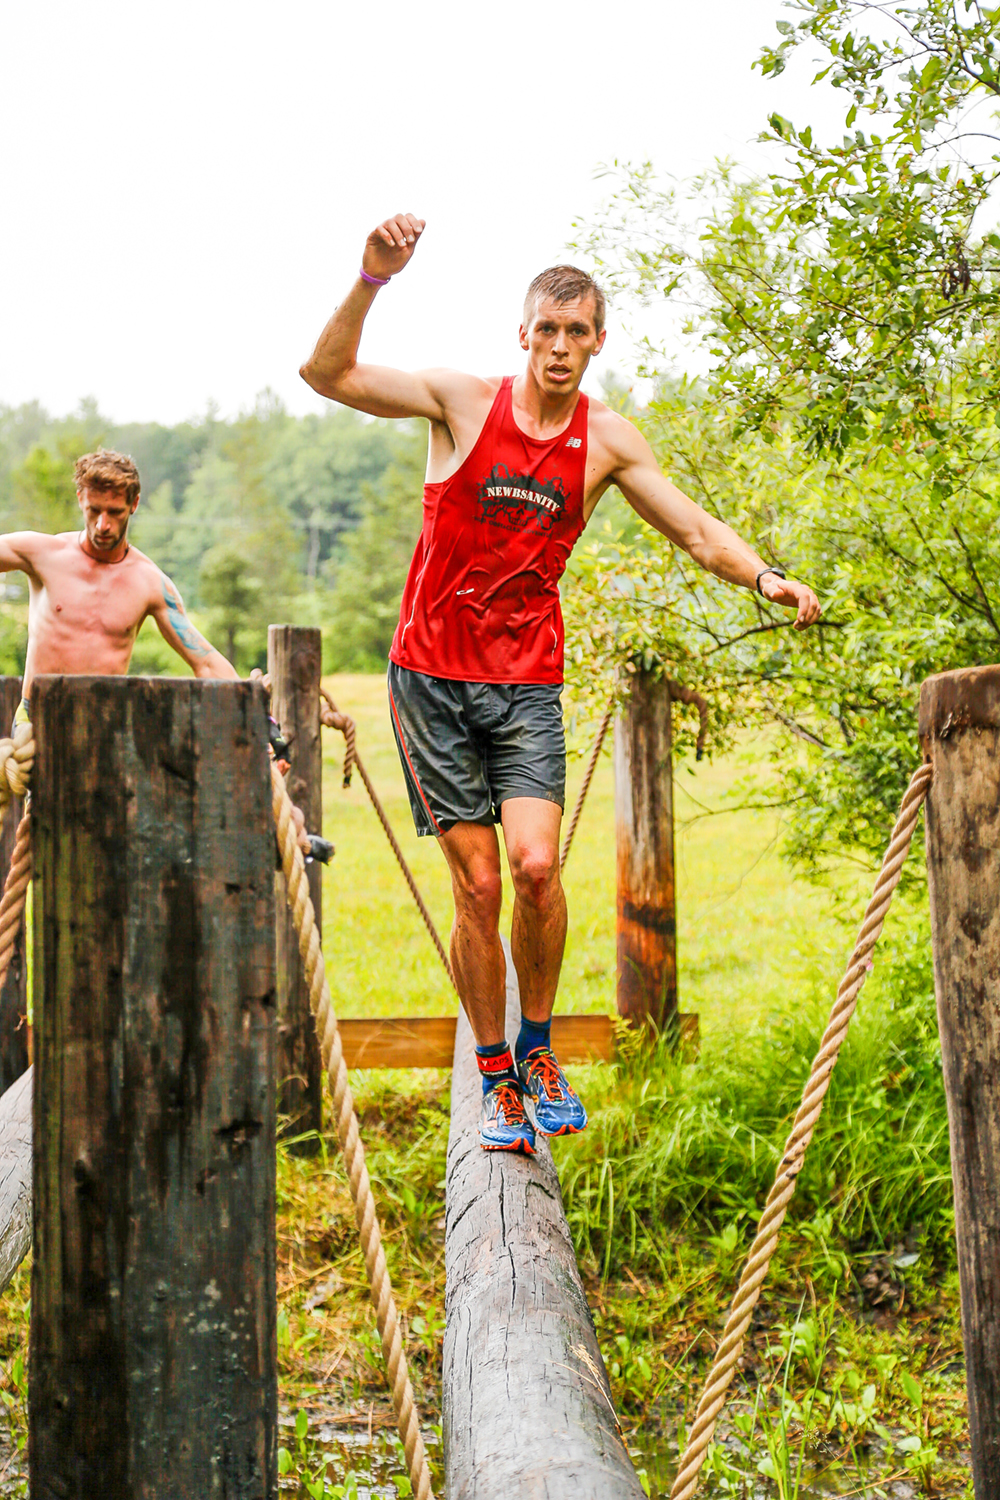 Viking Obstacle Course Race at Sunny Hill Resort in 2016.  simplyphotographynj.com